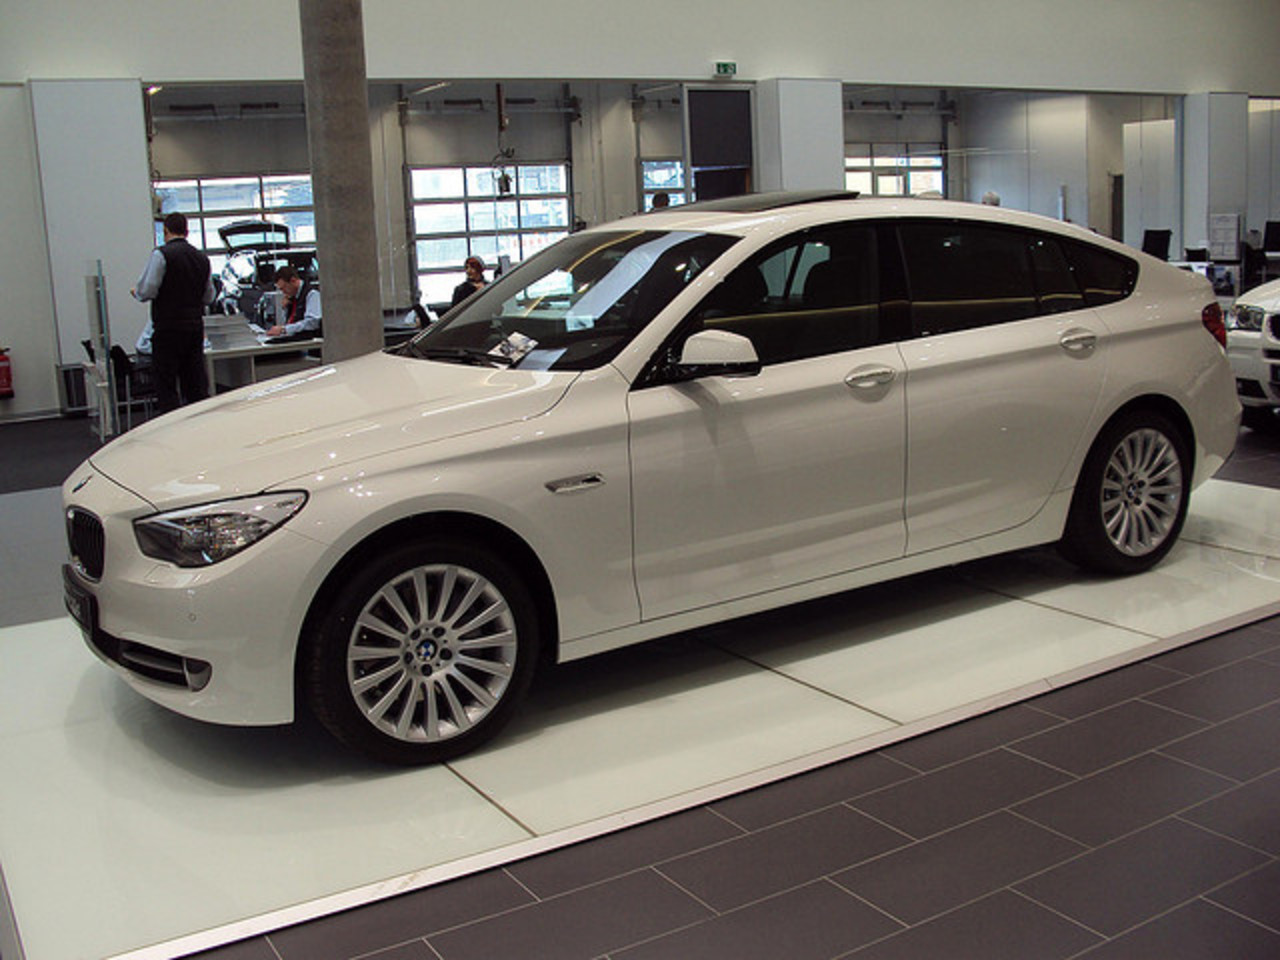 BMW 530d GT | Flickr - Photo Sharing!